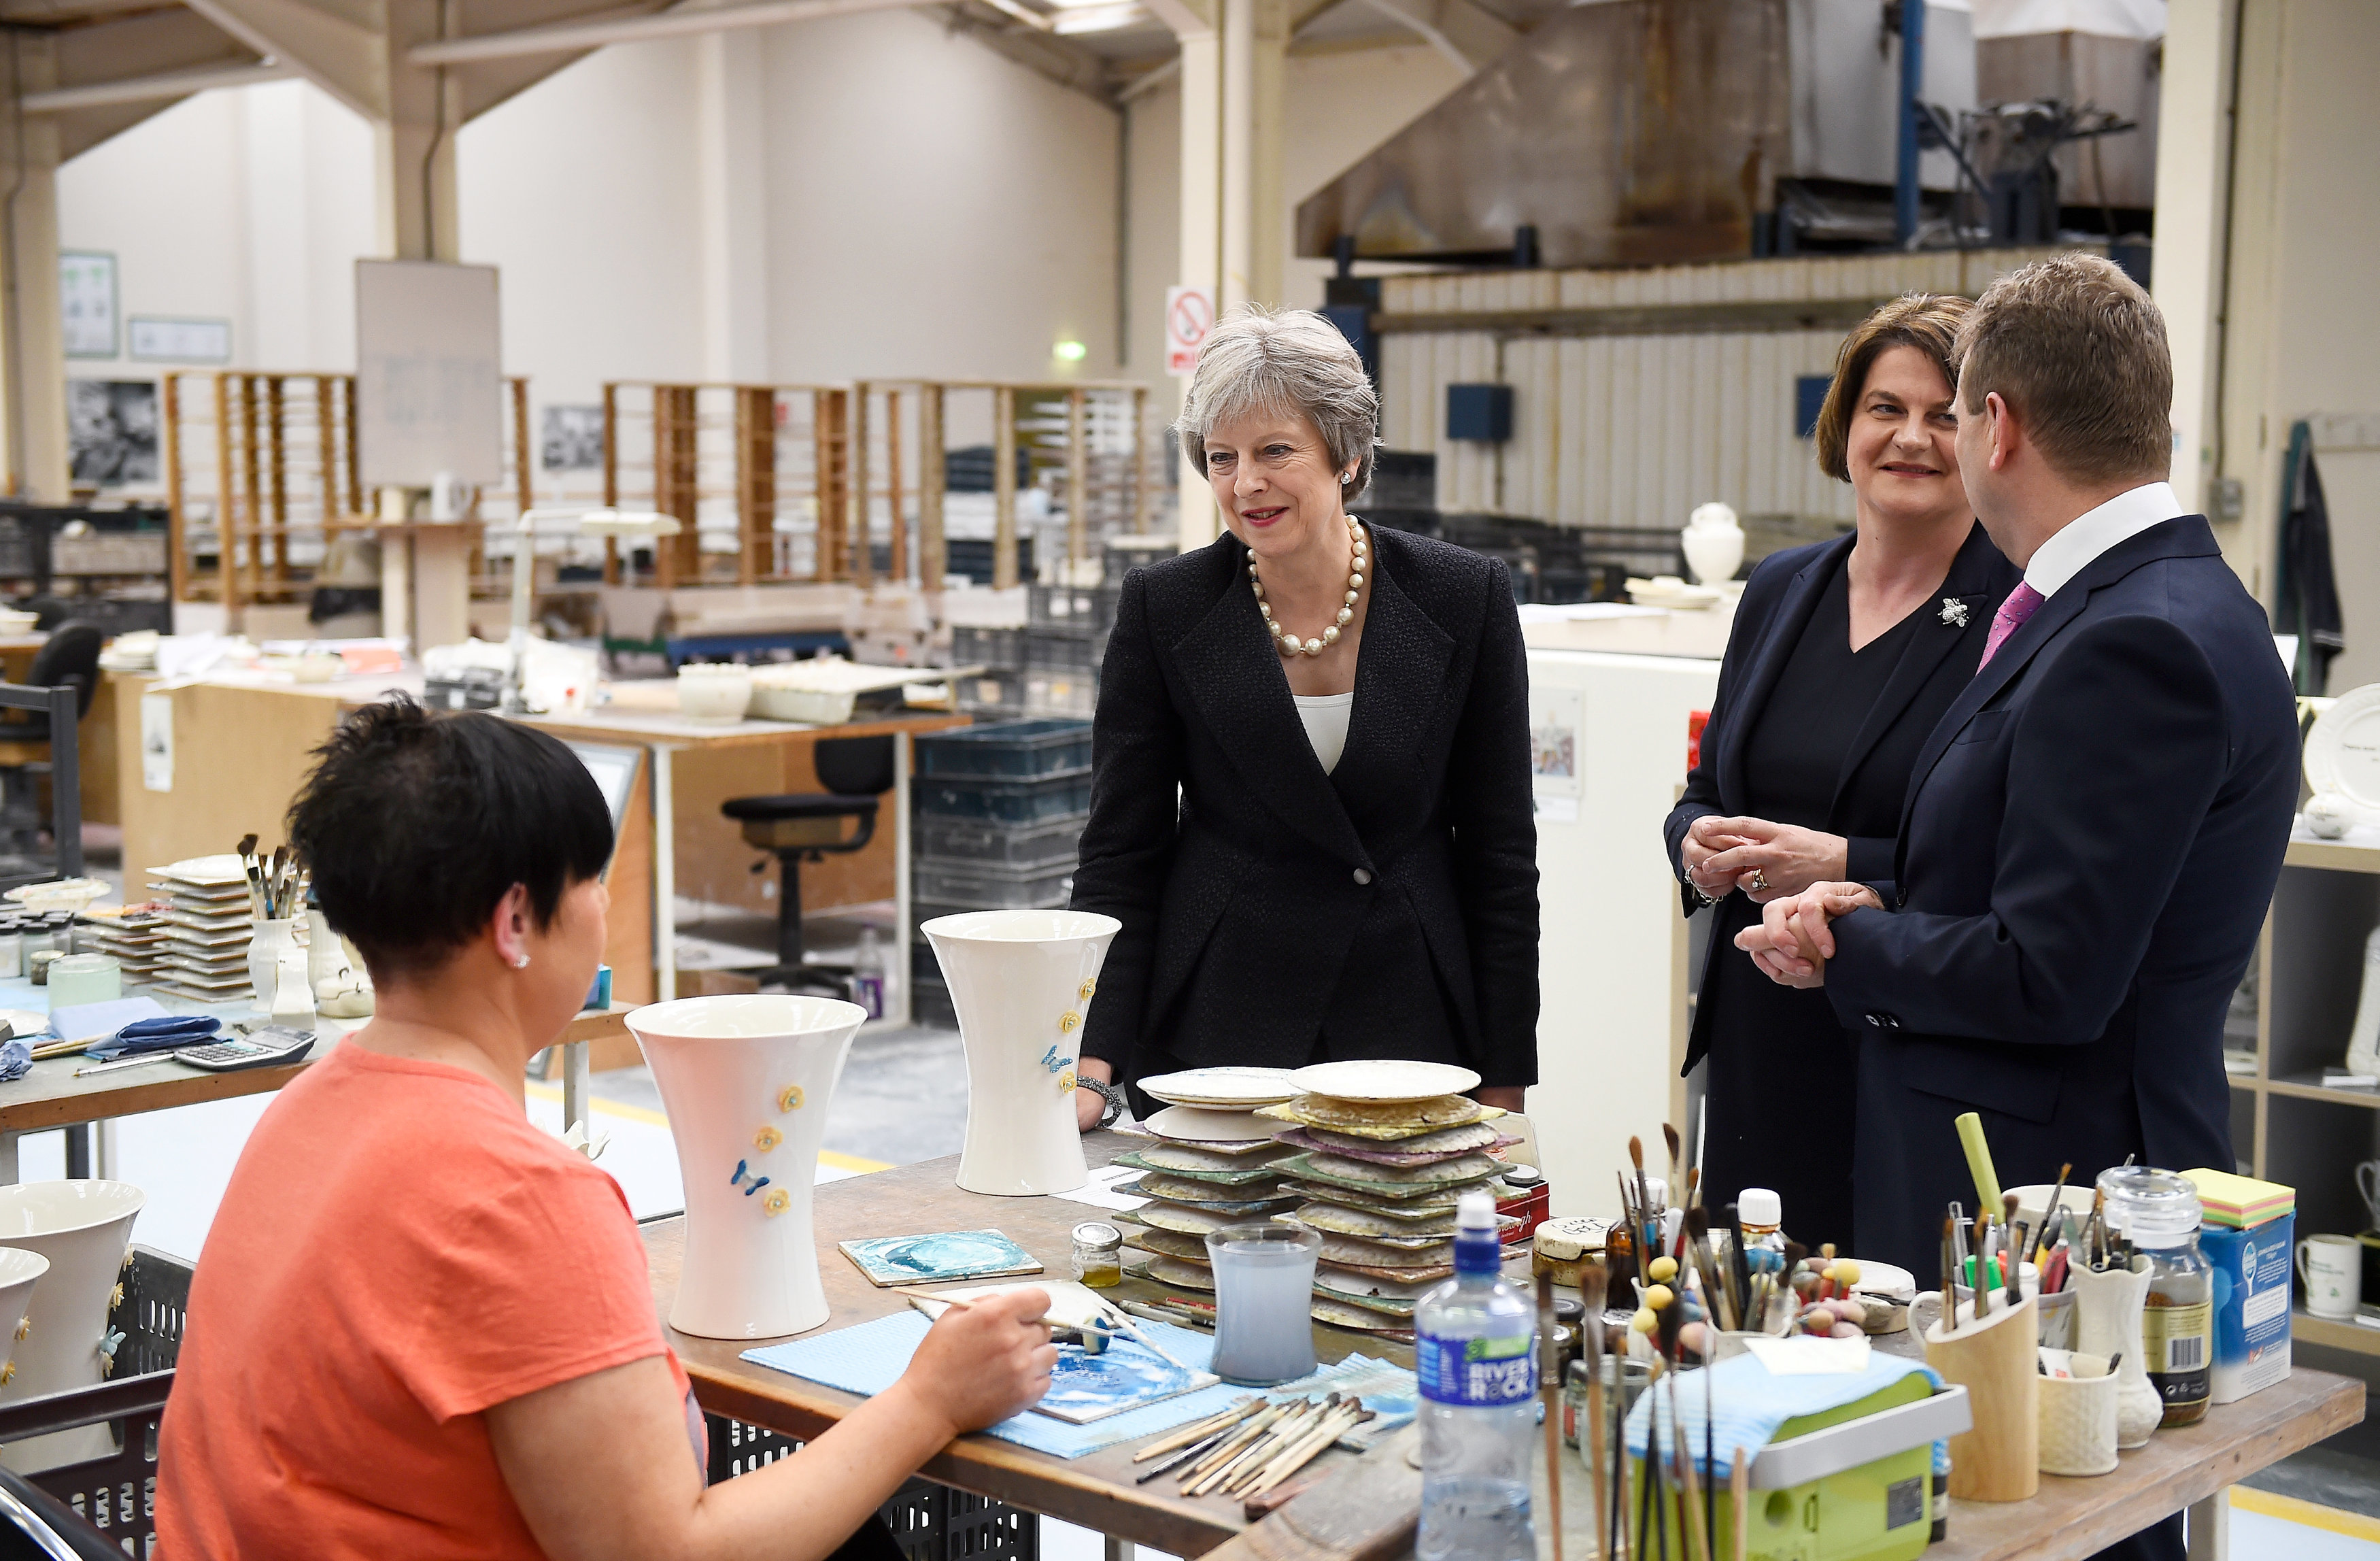 Theresa May and DUP leader Arlene Foster at the Belleek Pottery factory